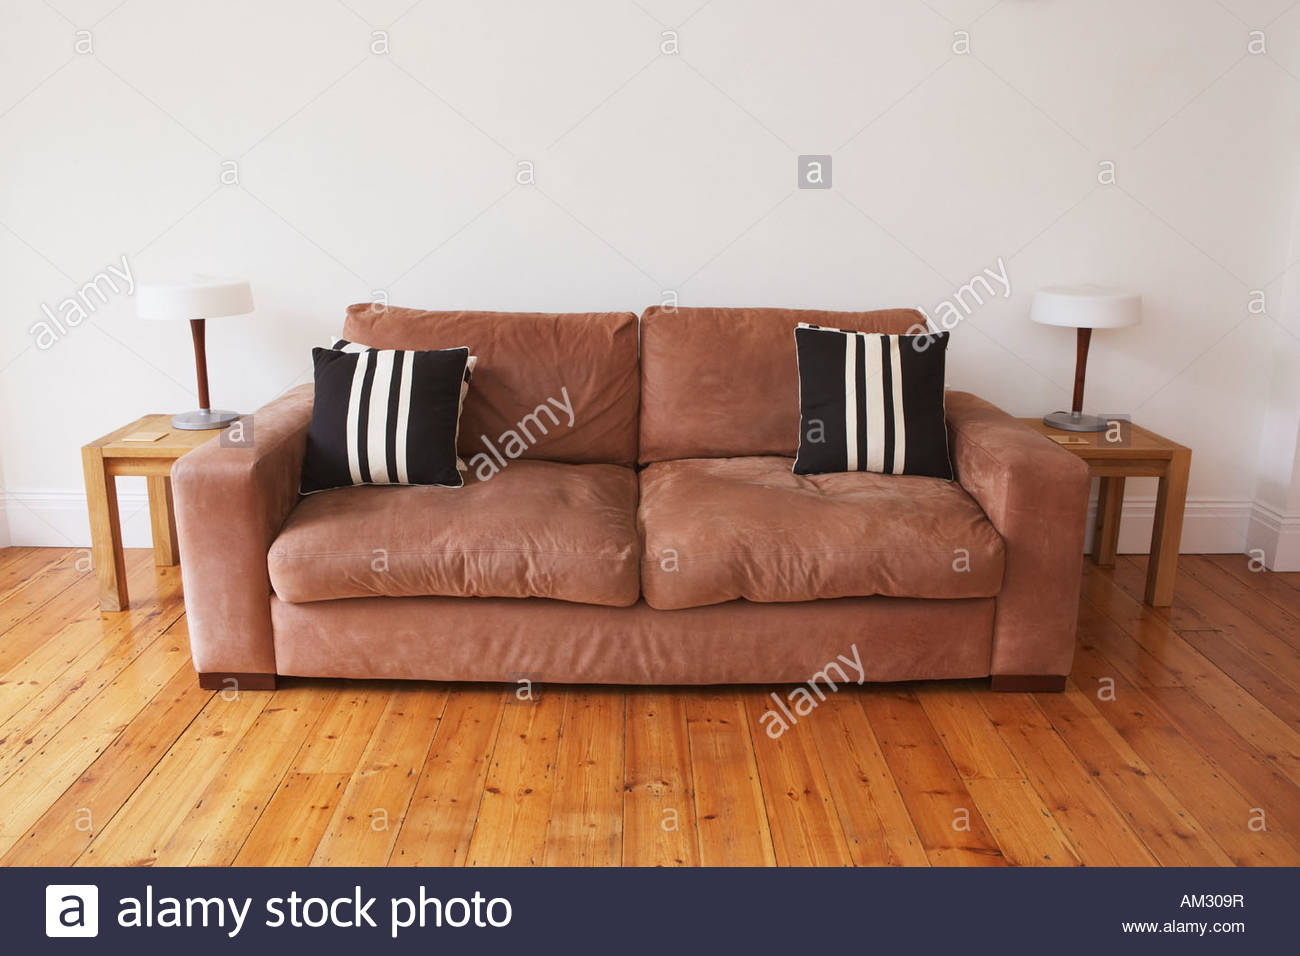 Empty living room with couch and end tables - Stock Image